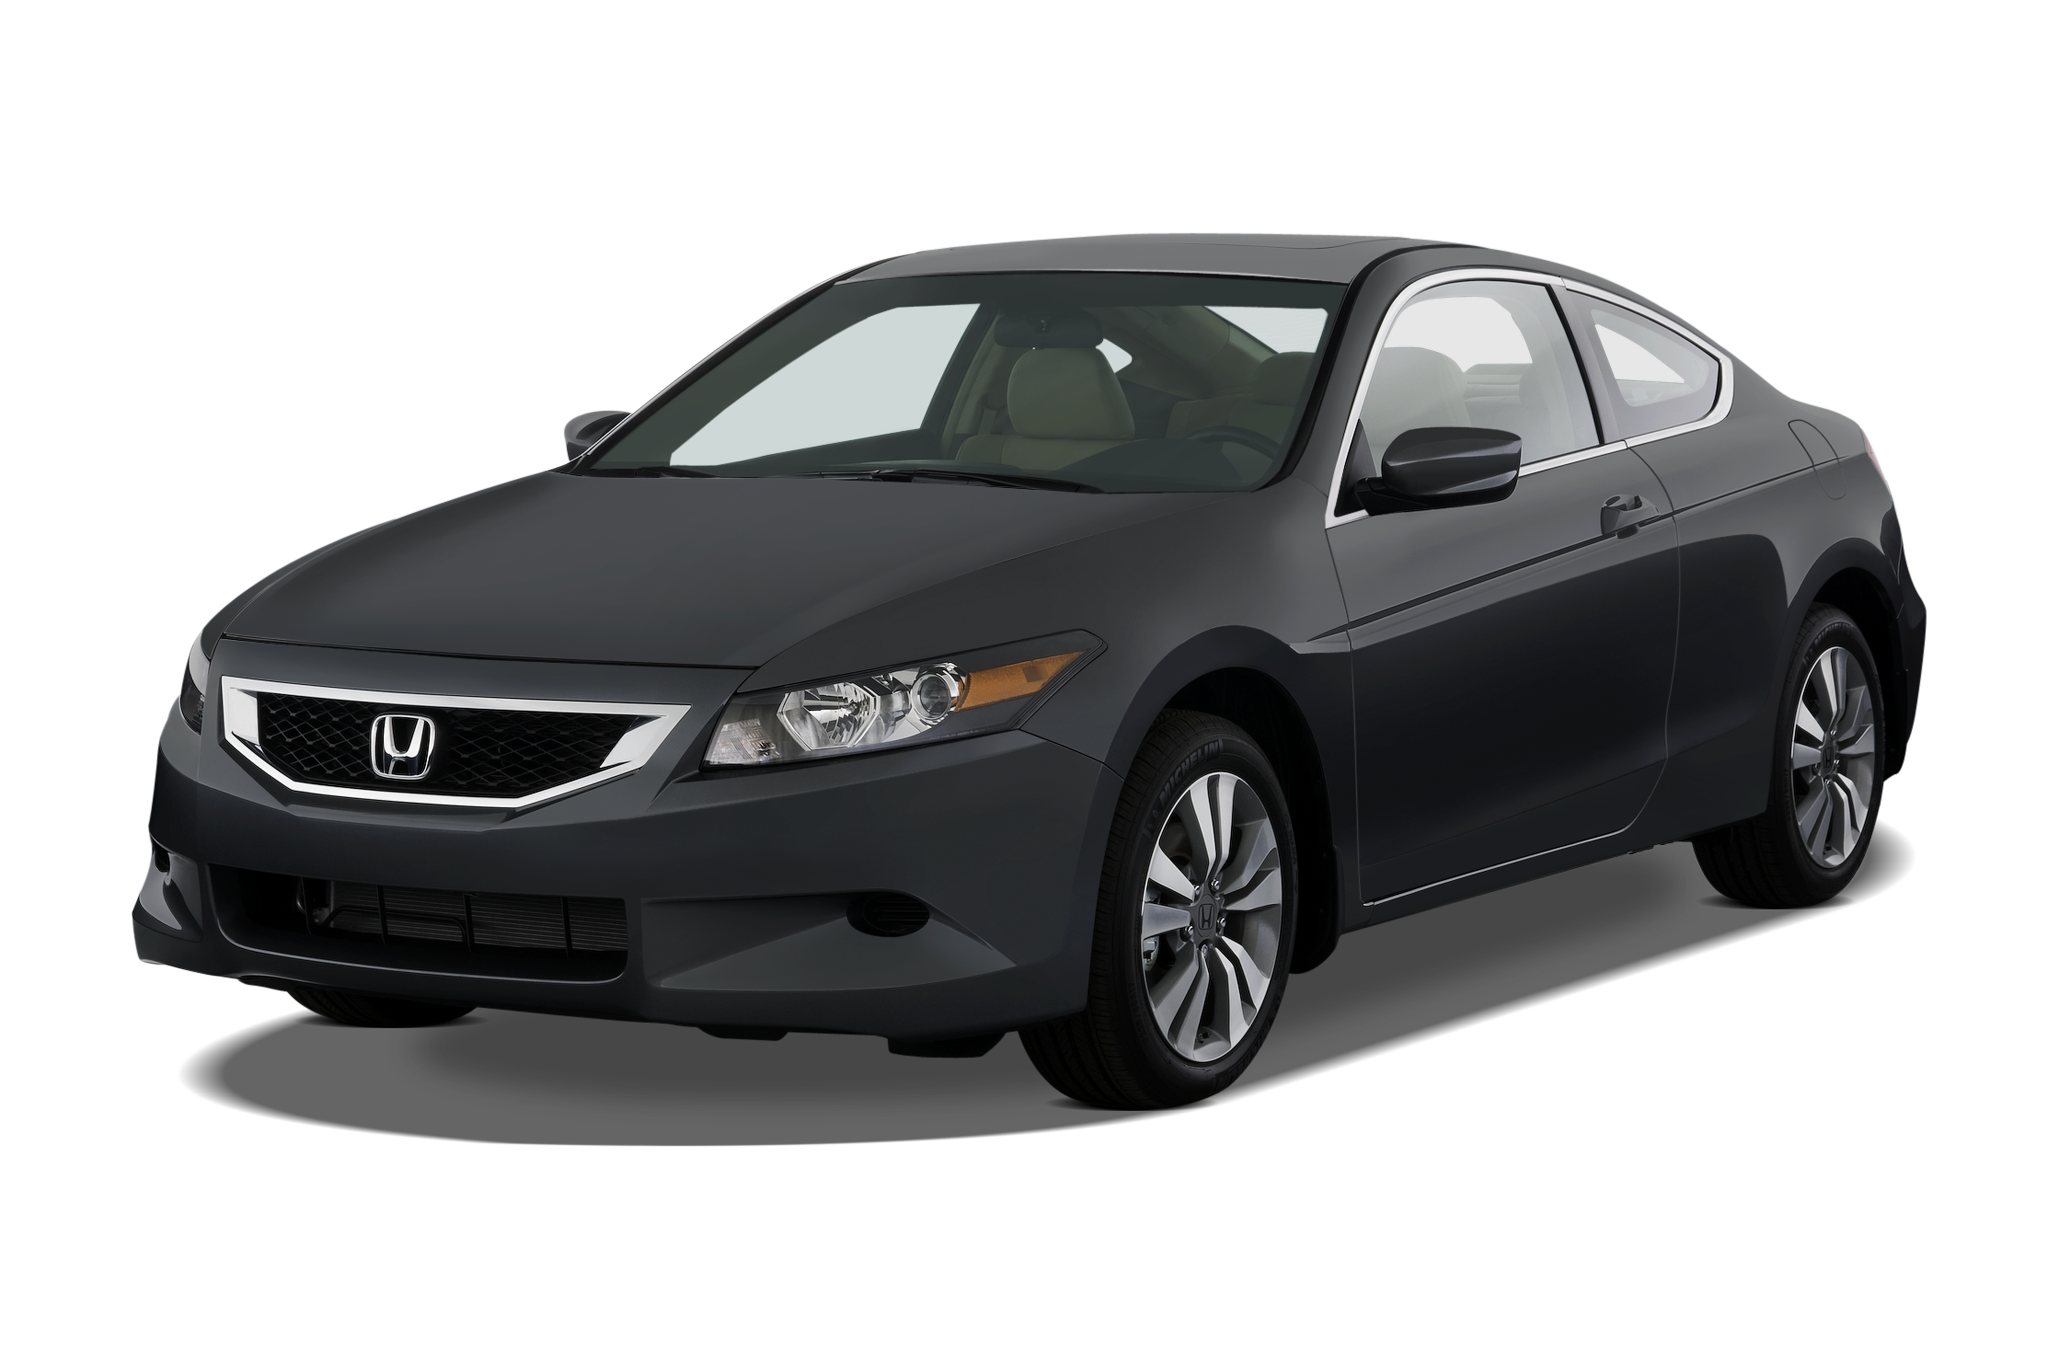 2010 honda accord coupe ex l honda midsize coupe review automobile magazine. Black Bedroom Furniture Sets. Home Design Ideas